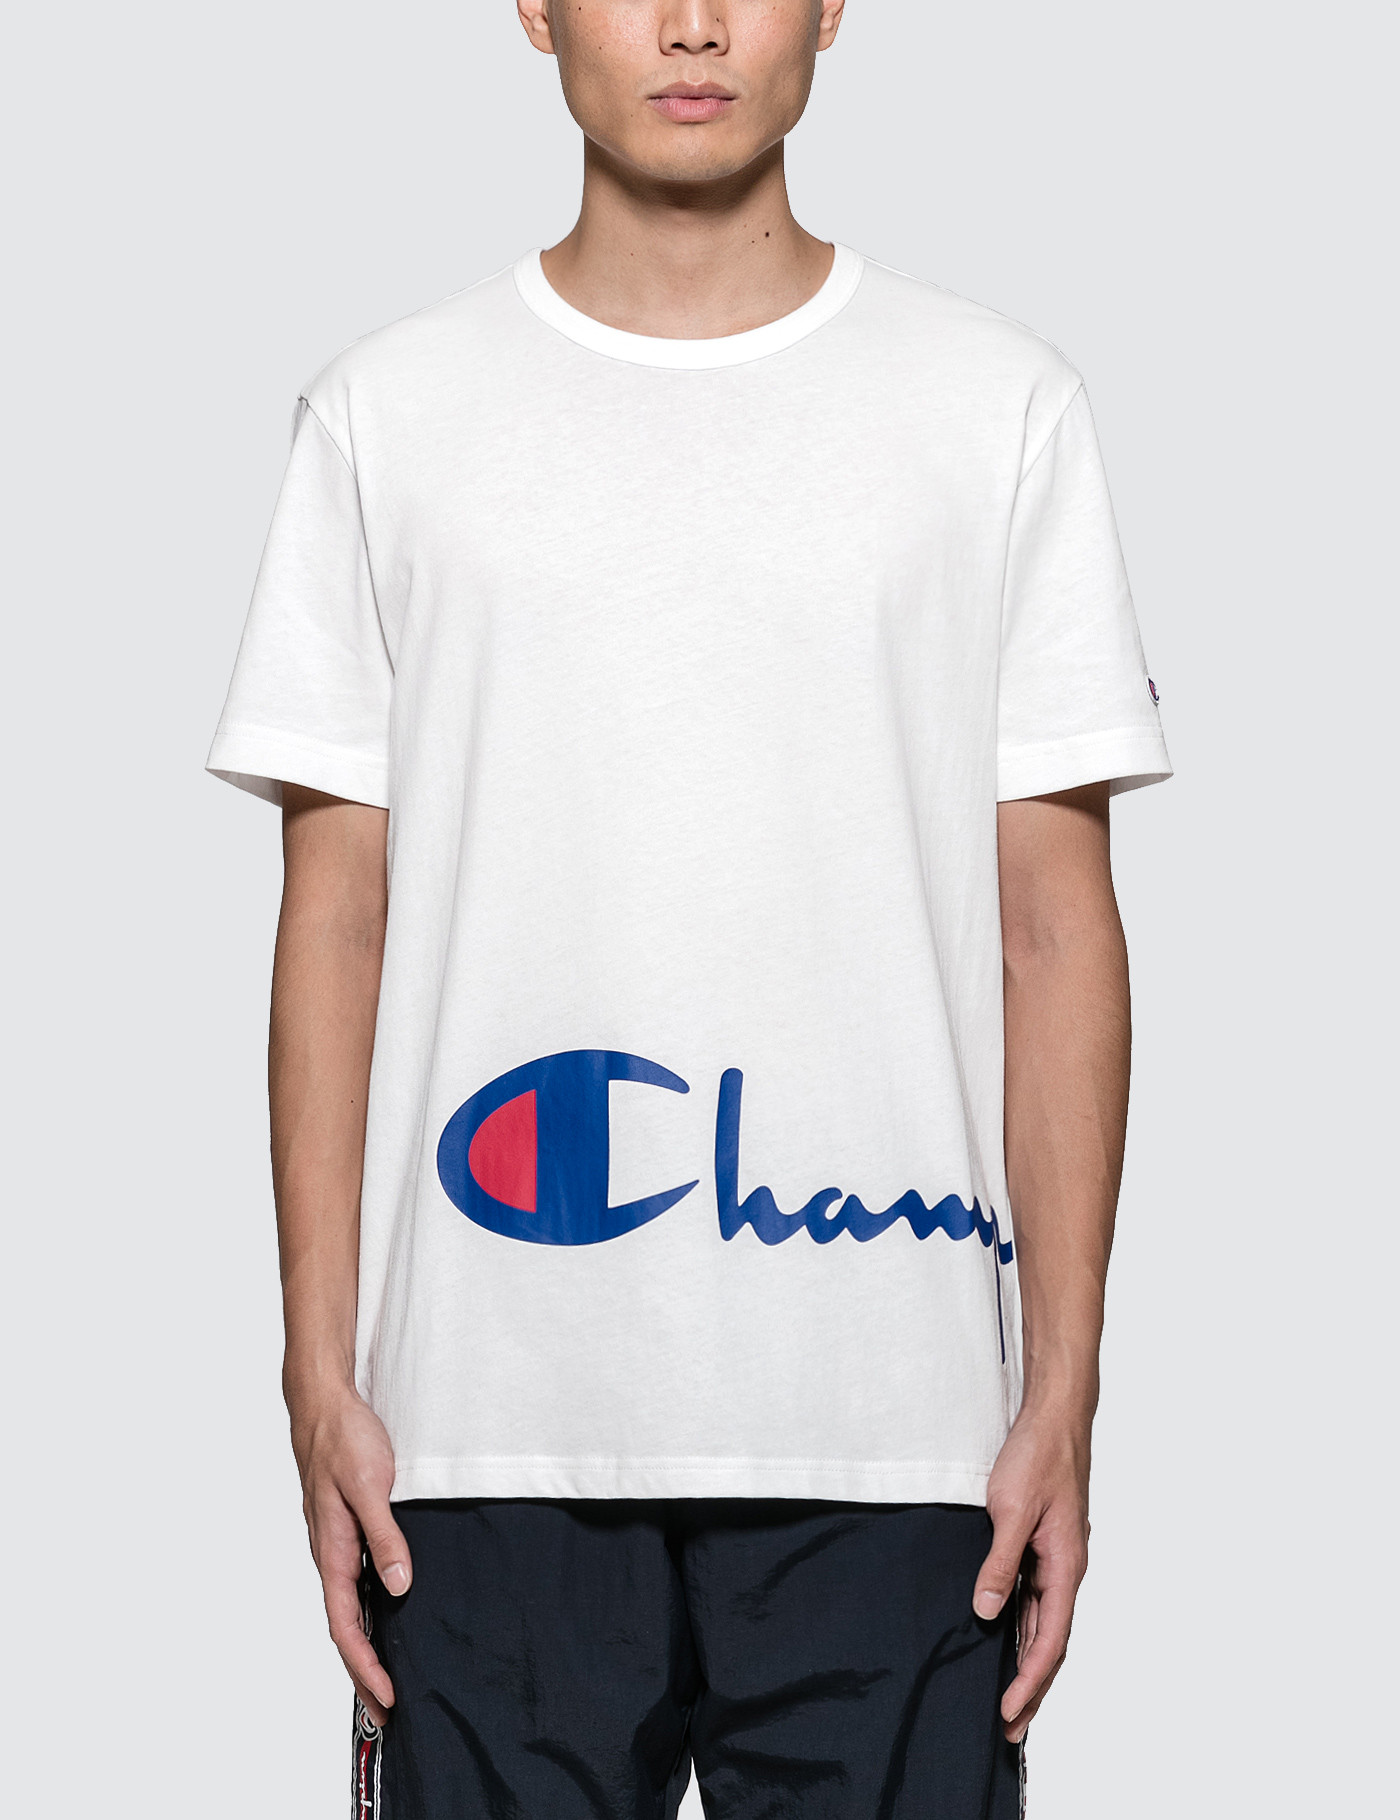 0fb315a0 Buy Original Champion Reverse Weave Oversized Script Logo S/S T ...